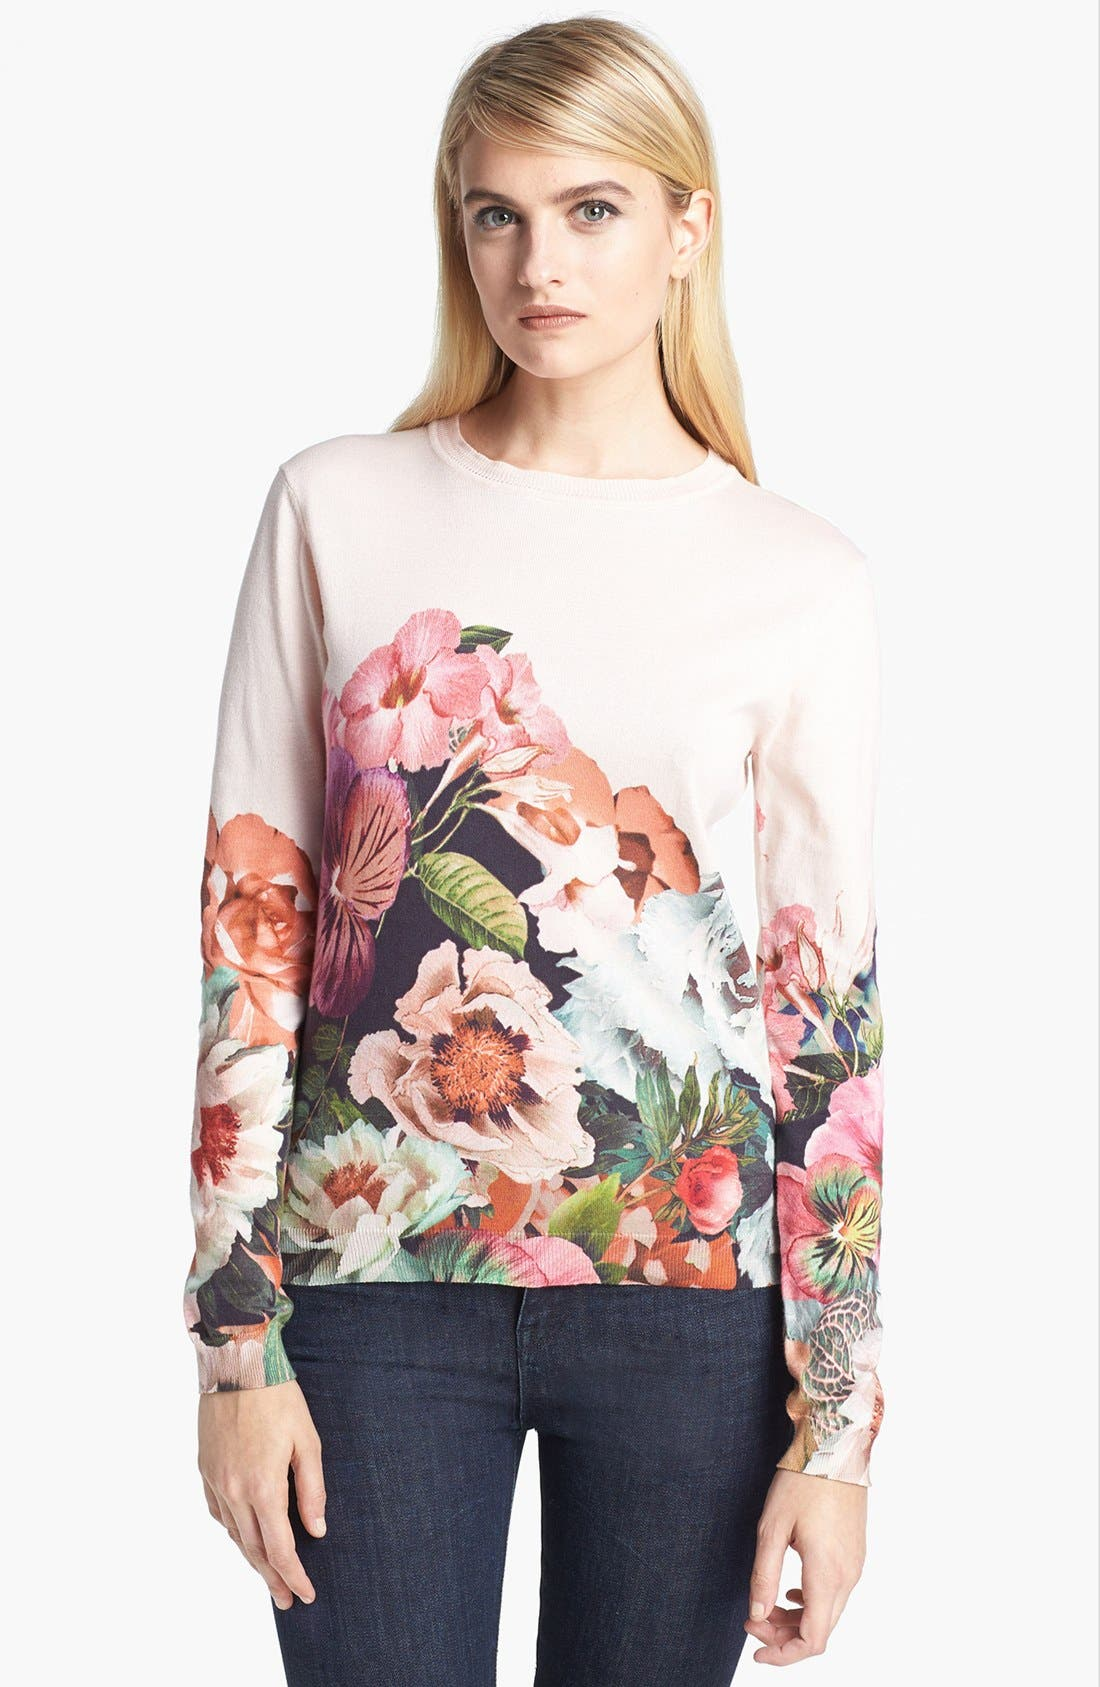 'Tangled Floral' Print Cotton Sweater,                             Main thumbnail 1, color,                             250